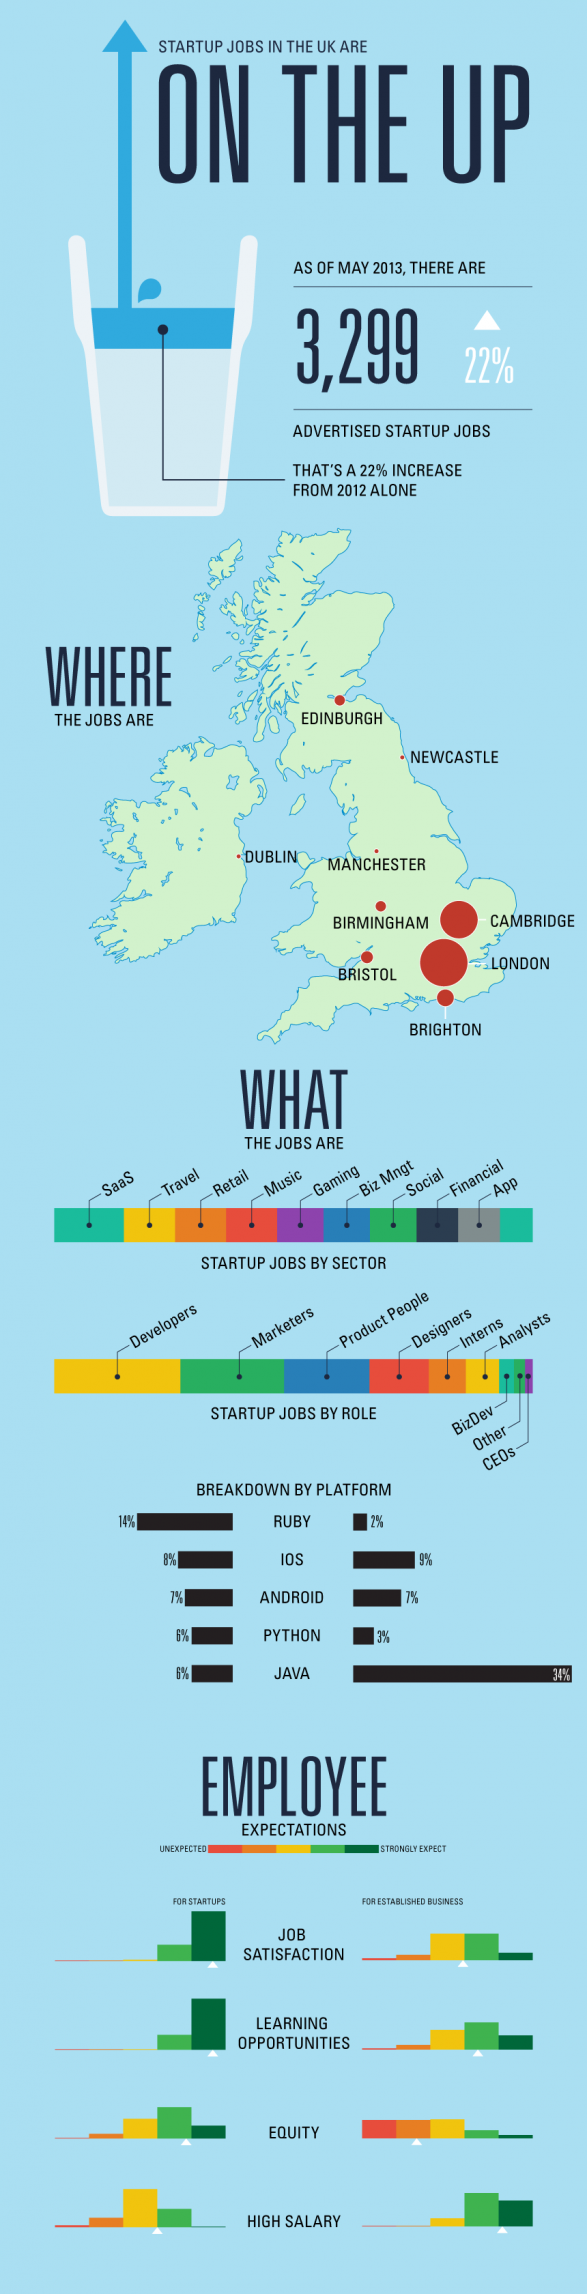 Where are the UK startup jobs